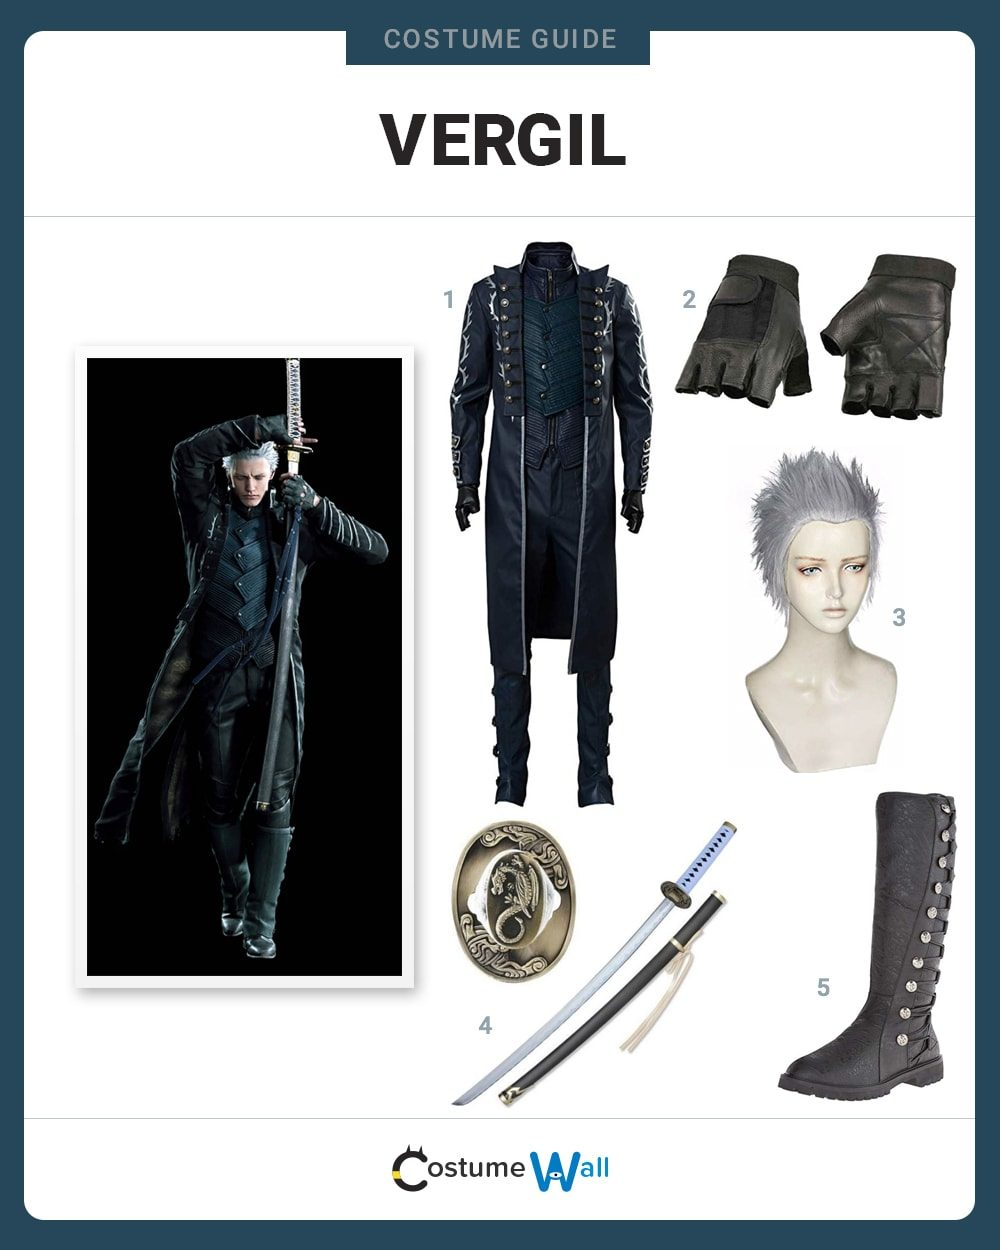 Vergil Costume Guide